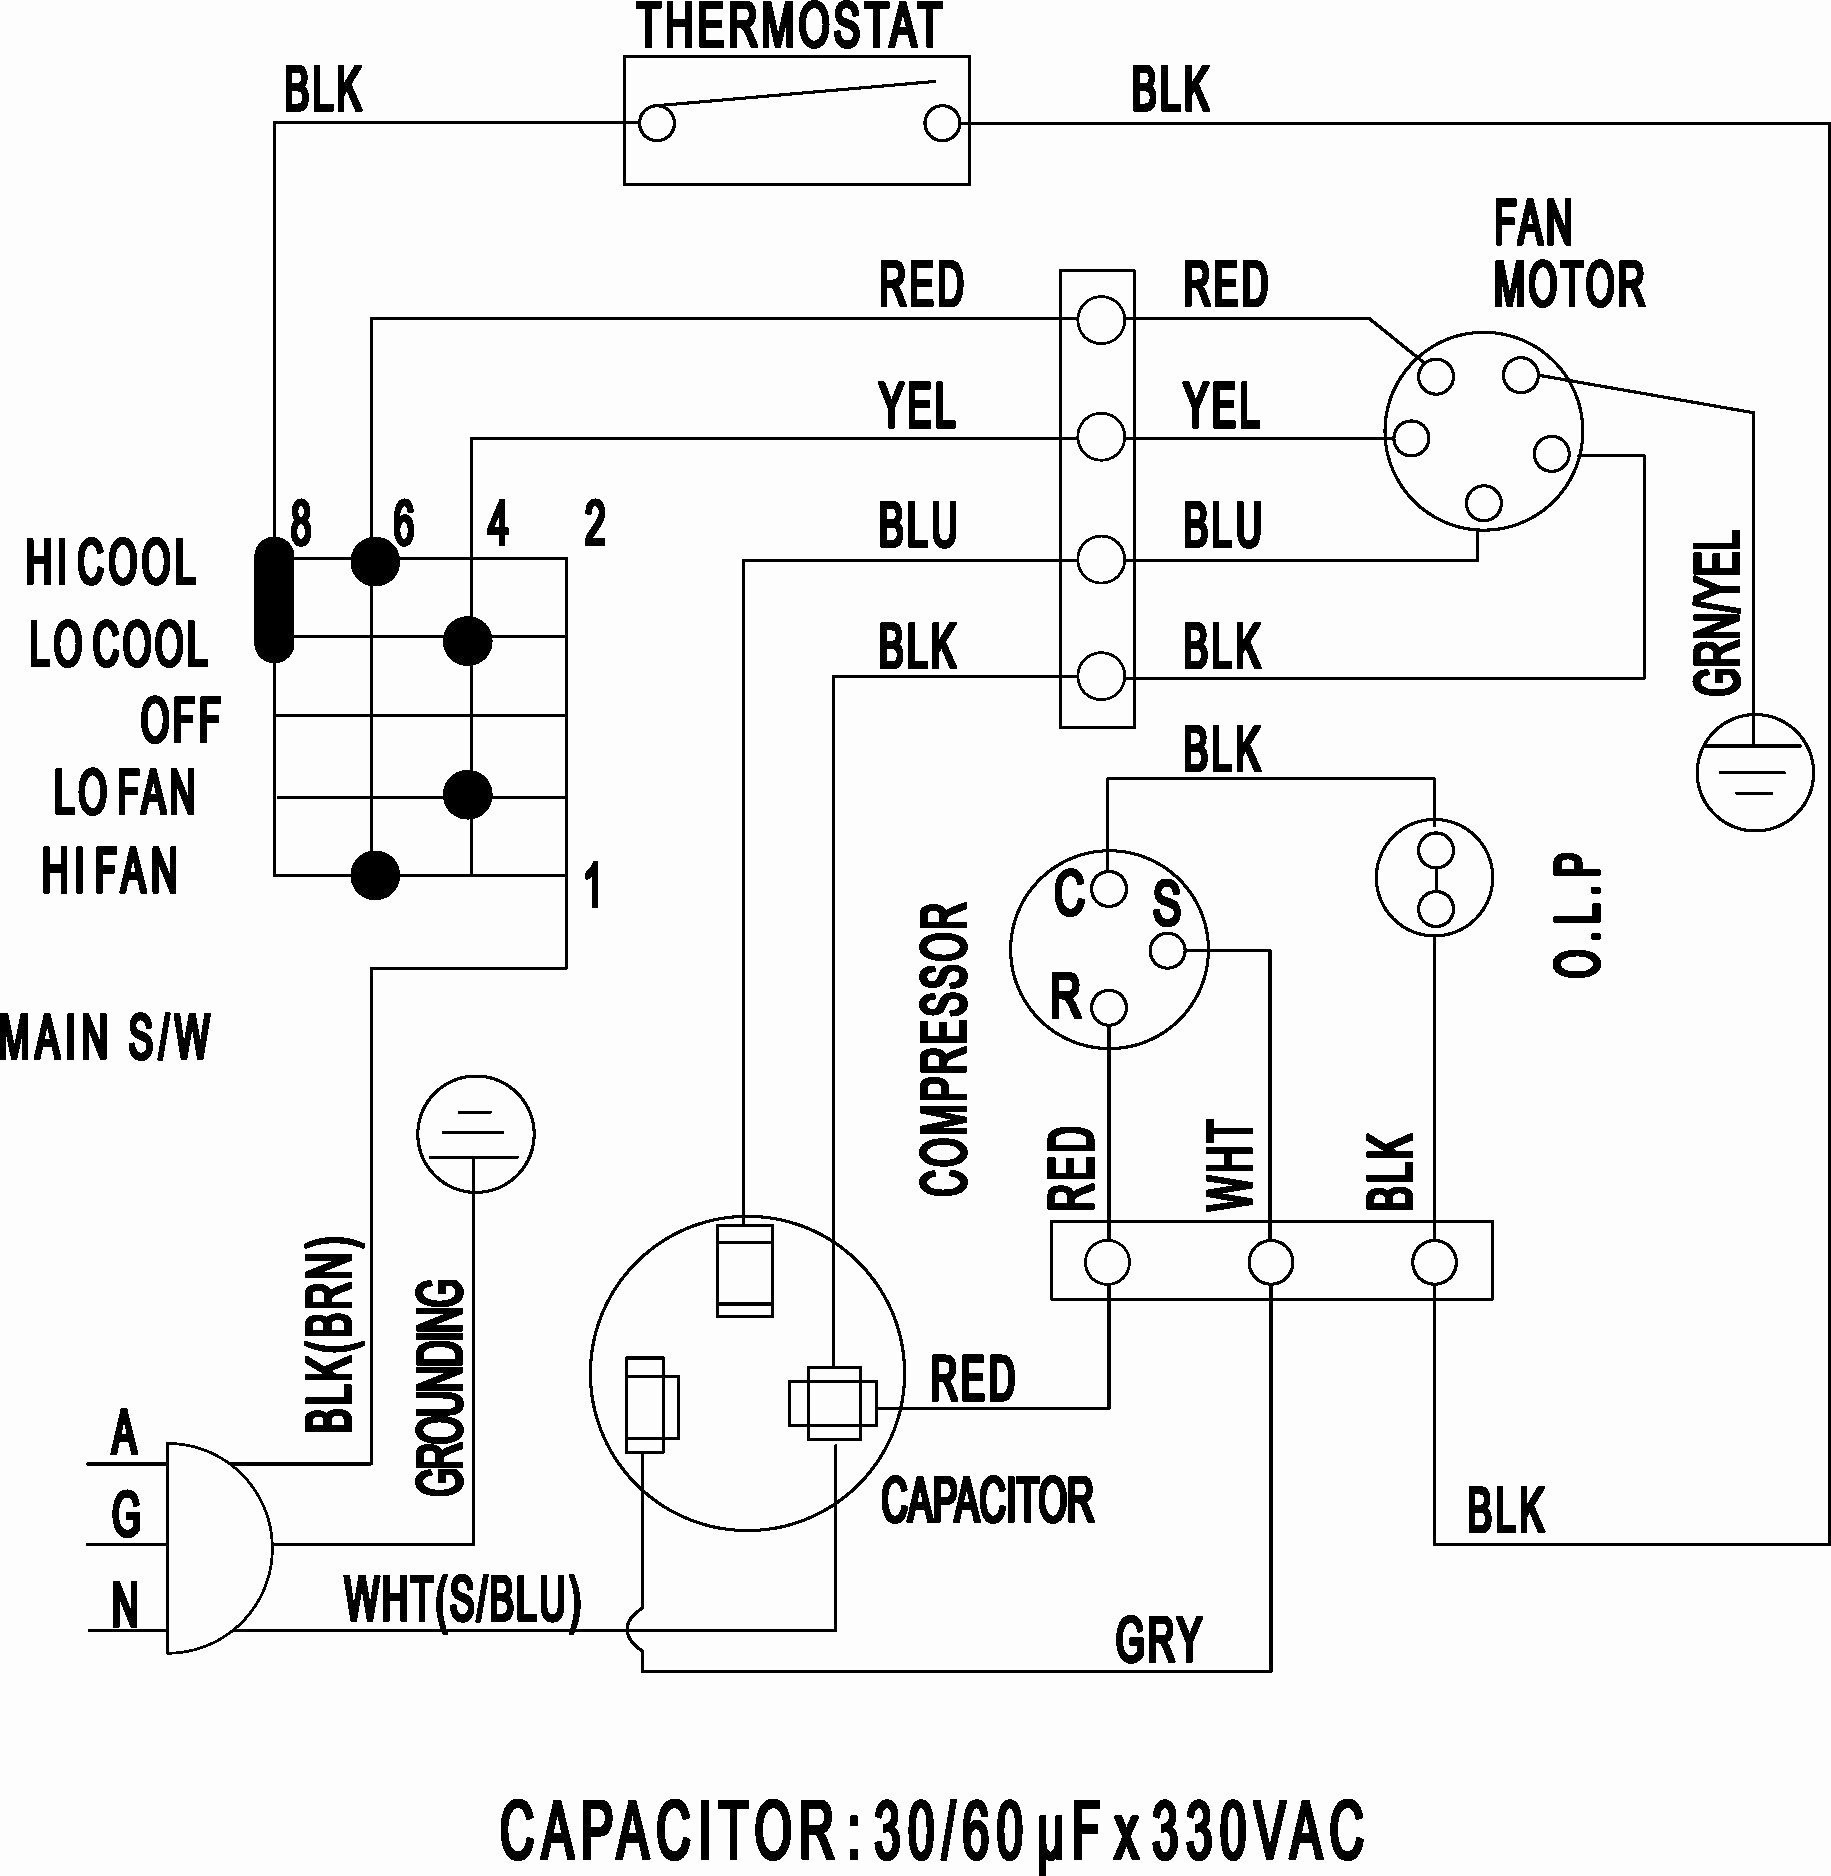 Air Conditioner Compressor Wiring Diagram - wiring diagram ... on